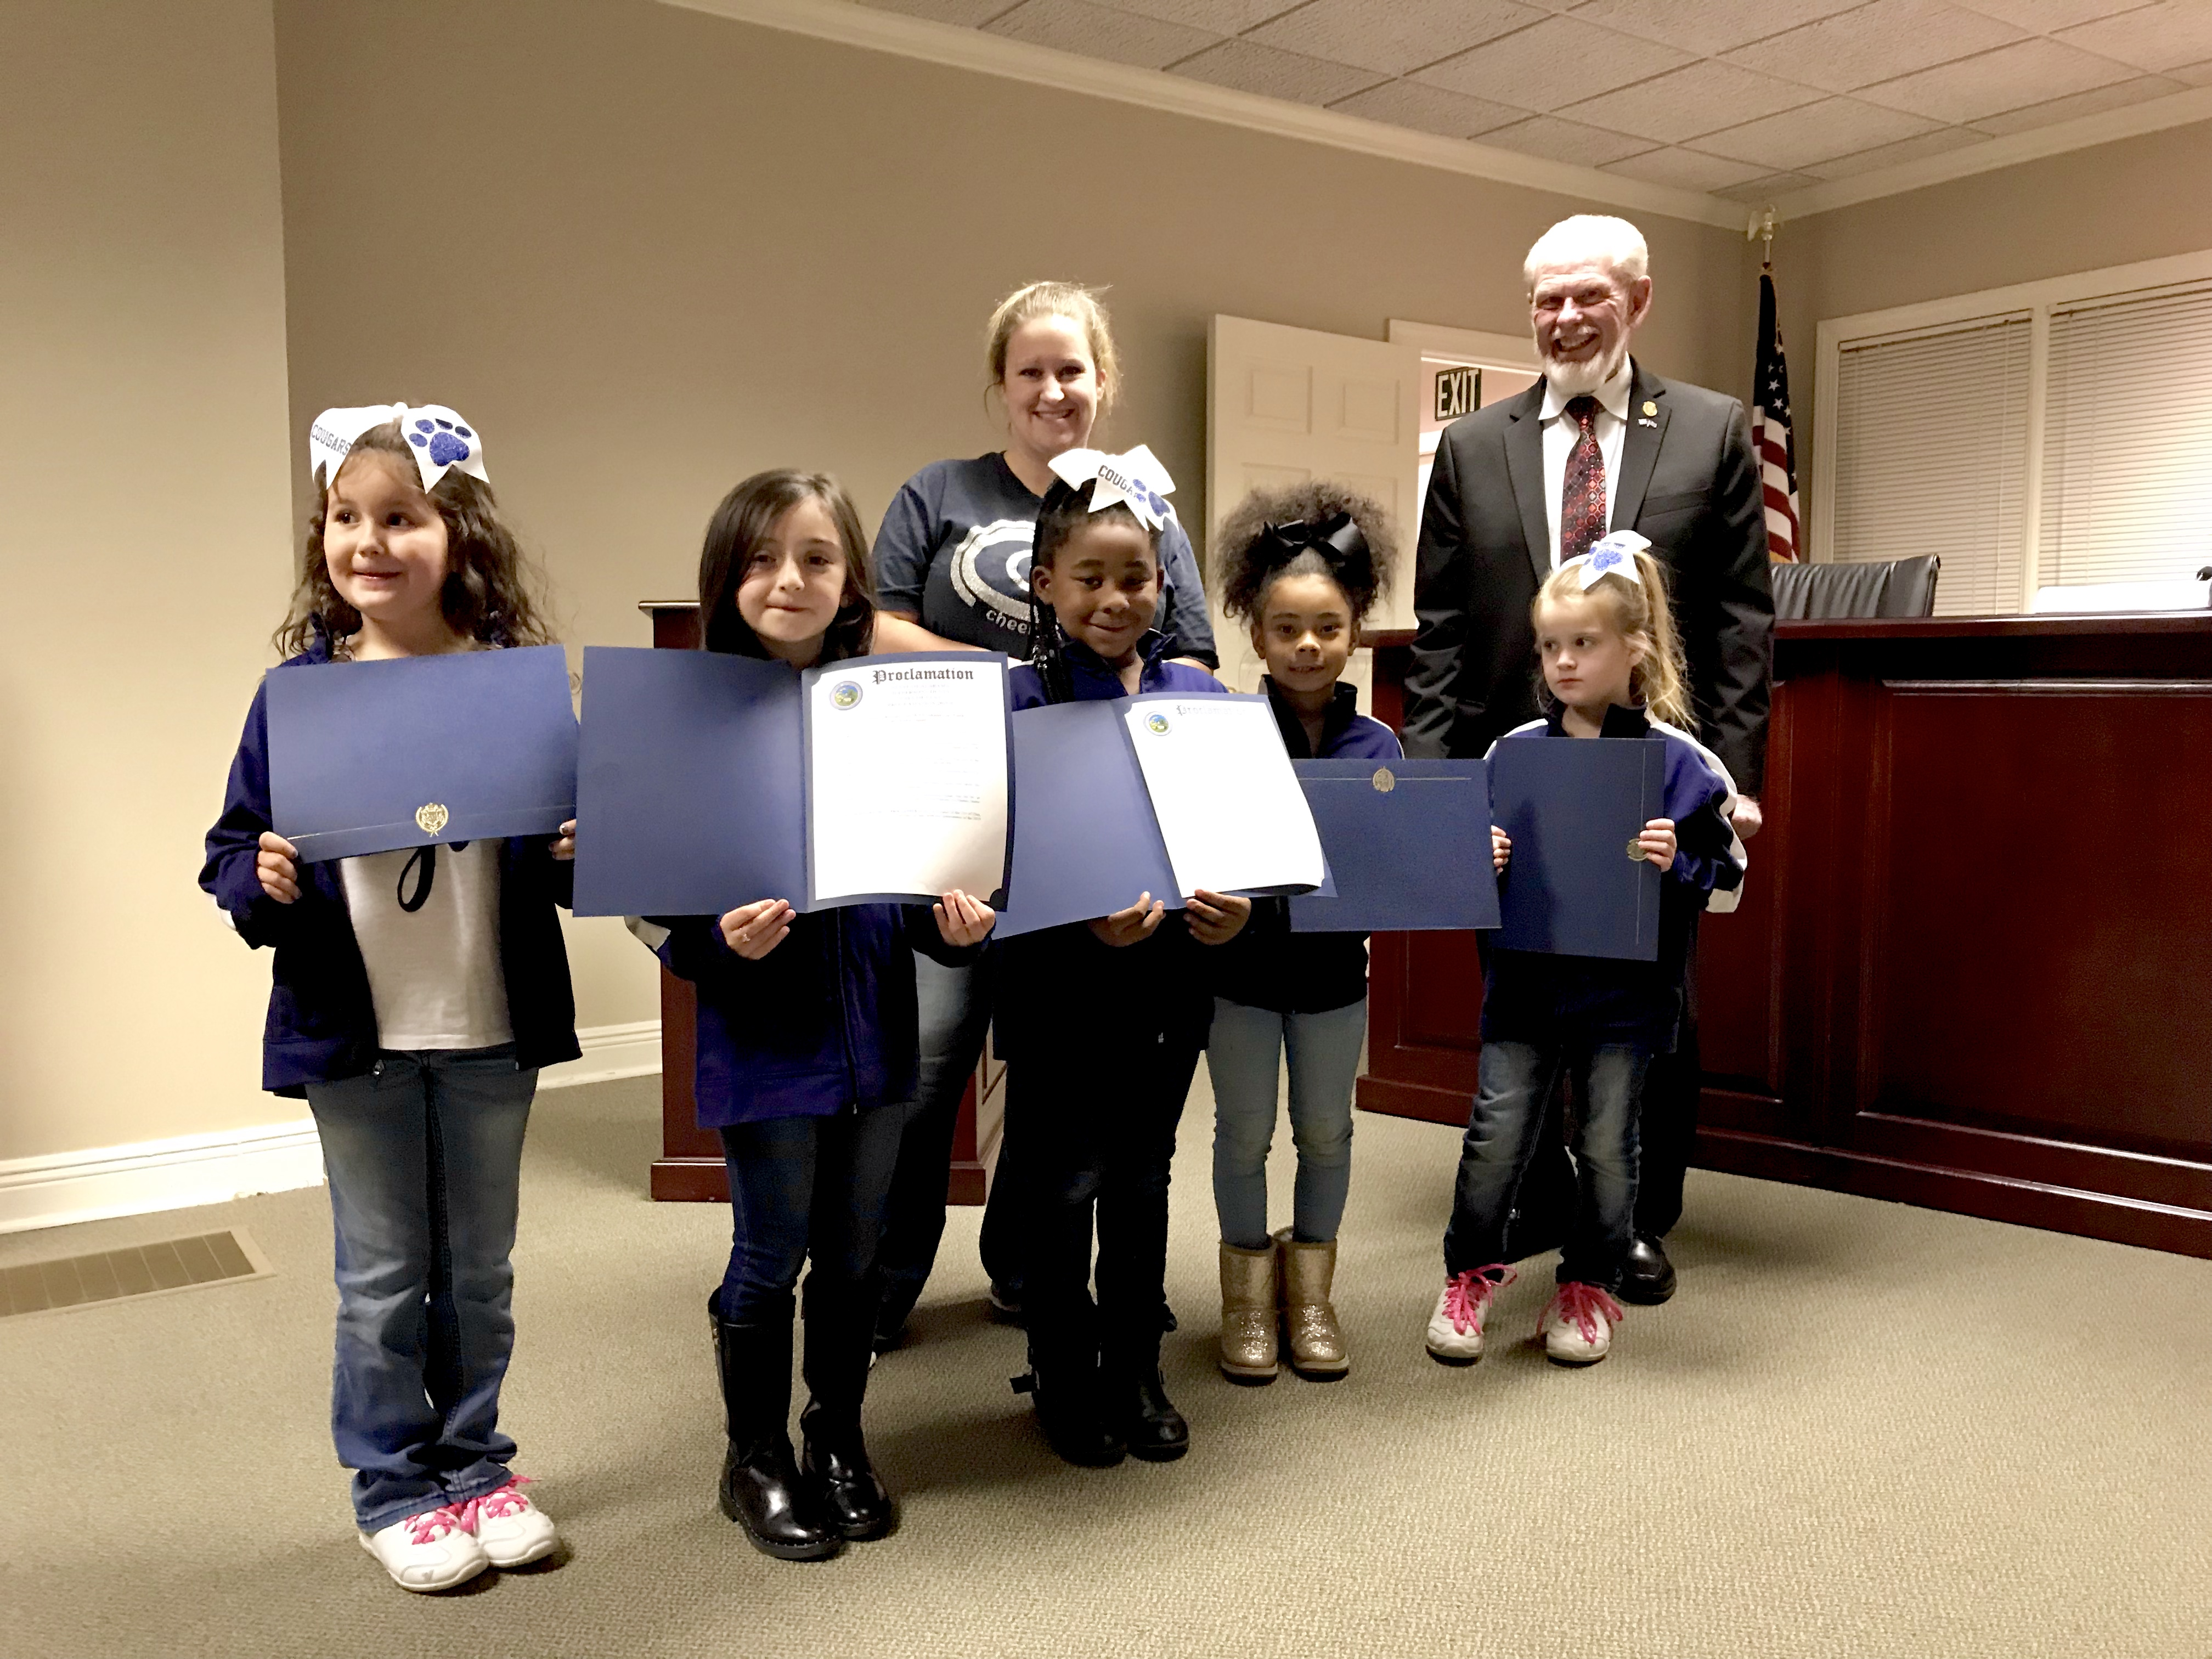 Clay Council recognizes Clay Youth cheerleaders, discusses final rendering of splash pad/playground complex